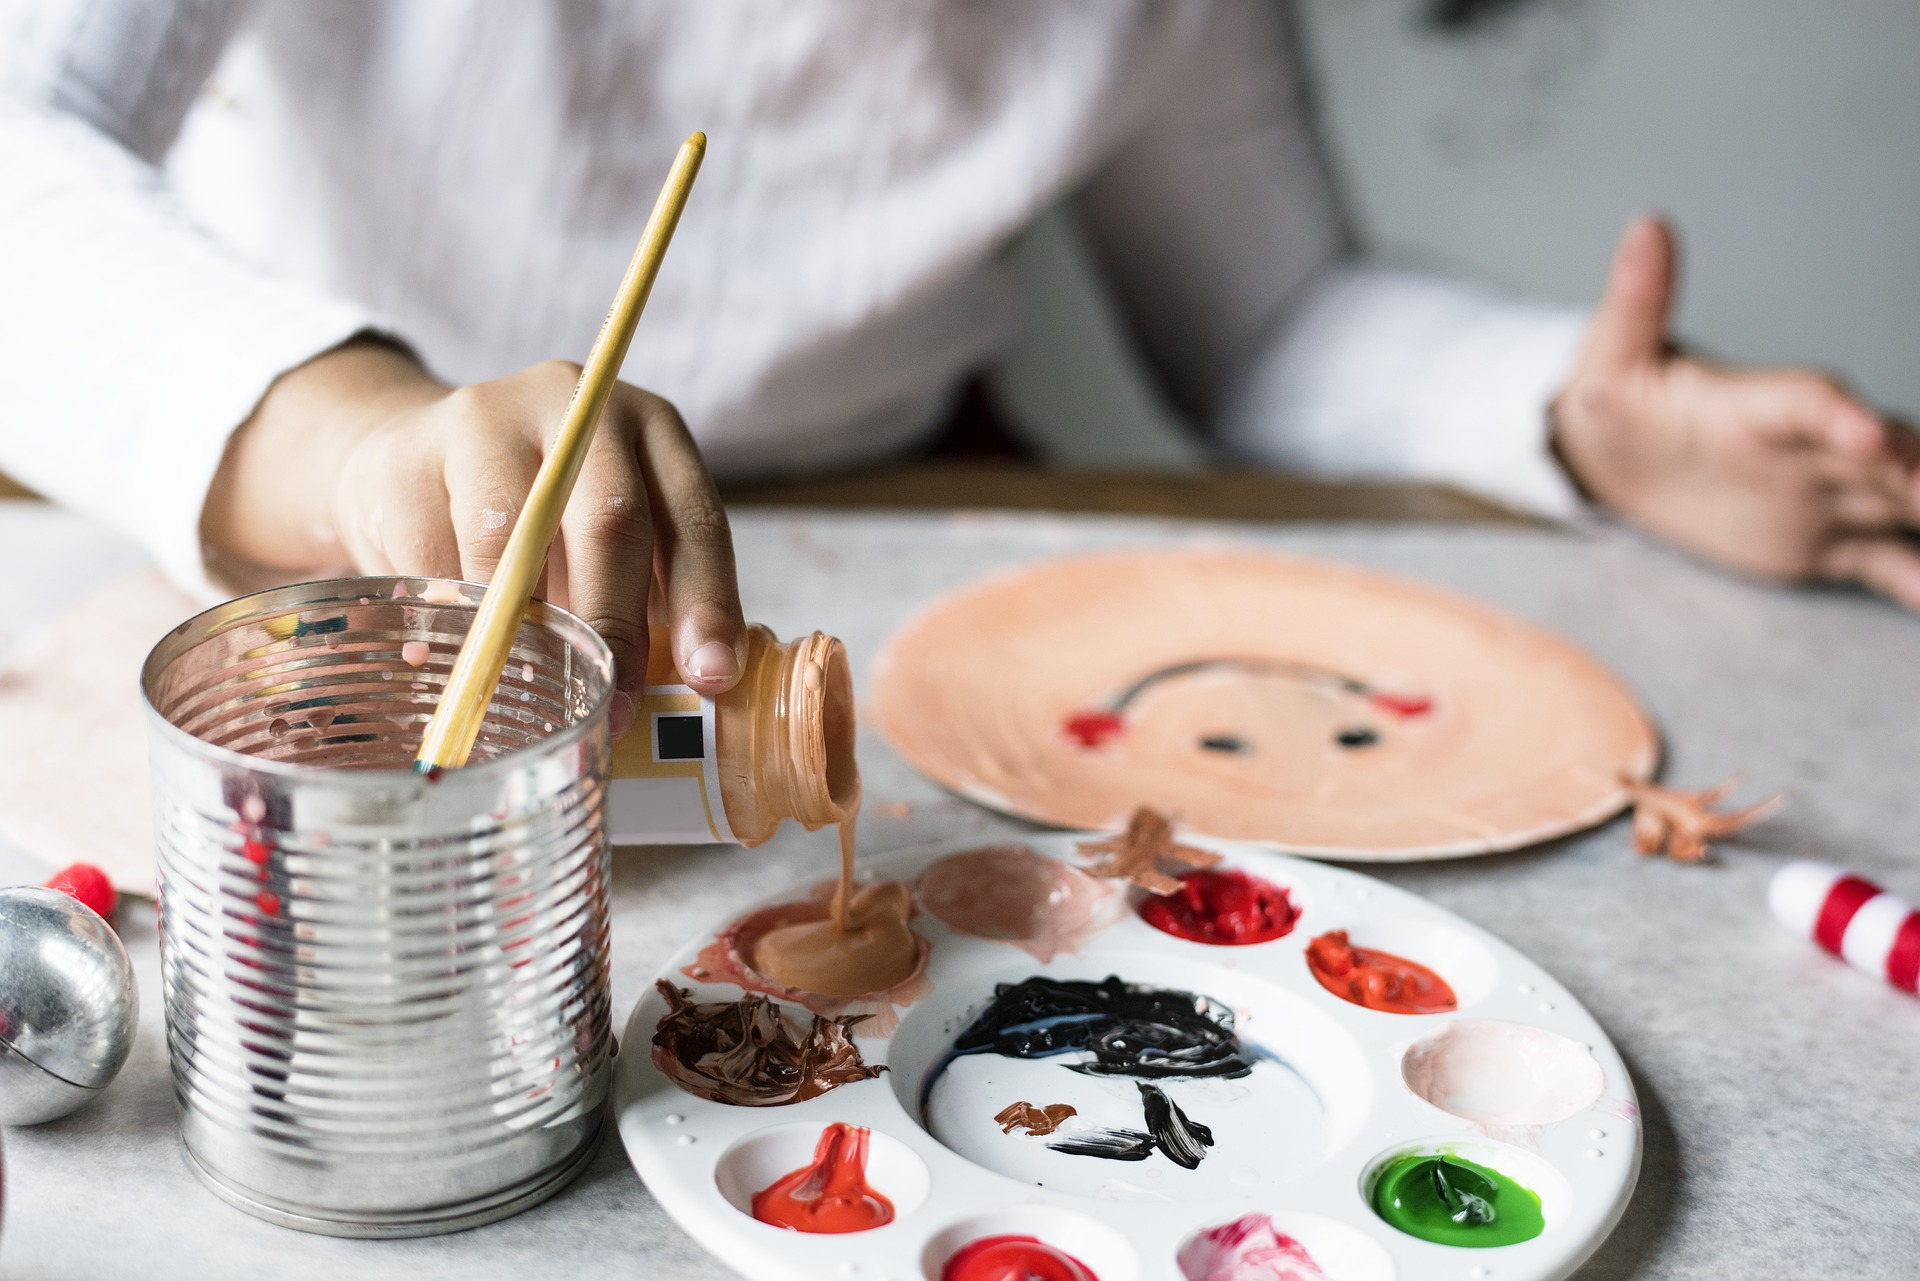 Importance Of Art And Craft For Kids